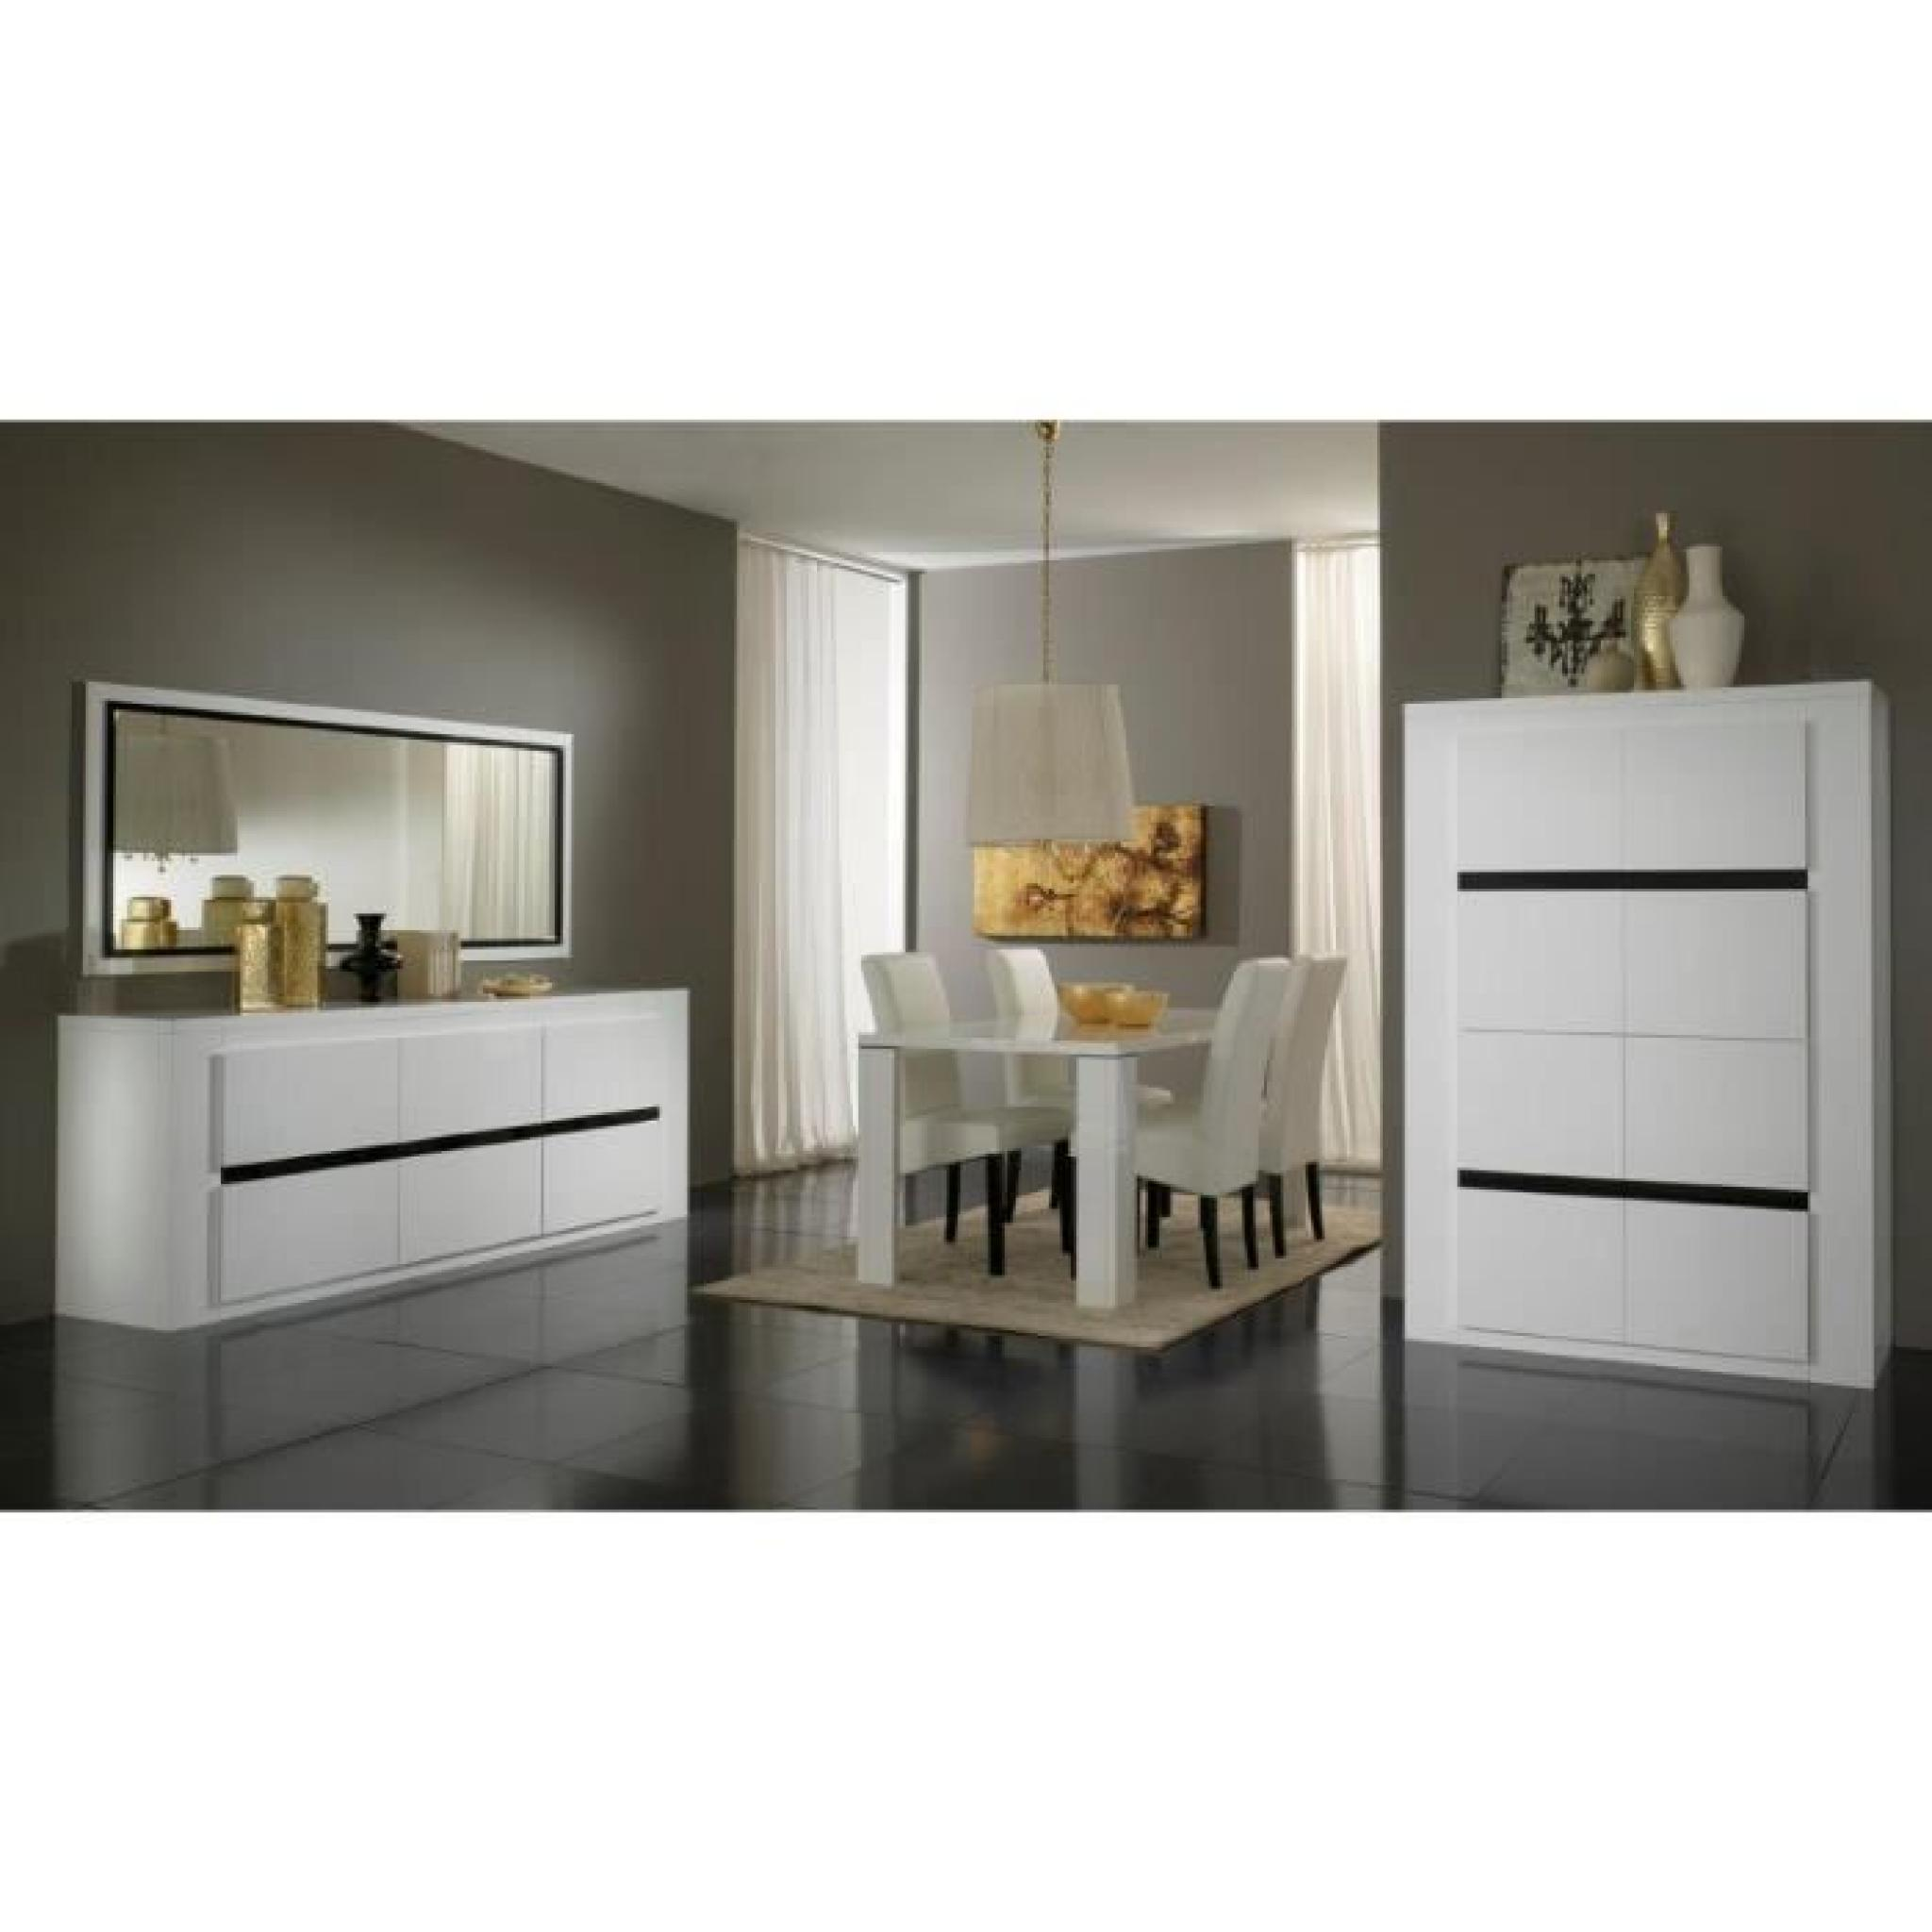 buffet salle manger ikea buffet salle manger ikea with. Black Bedroom Furniture Sets. Home Design Ideas